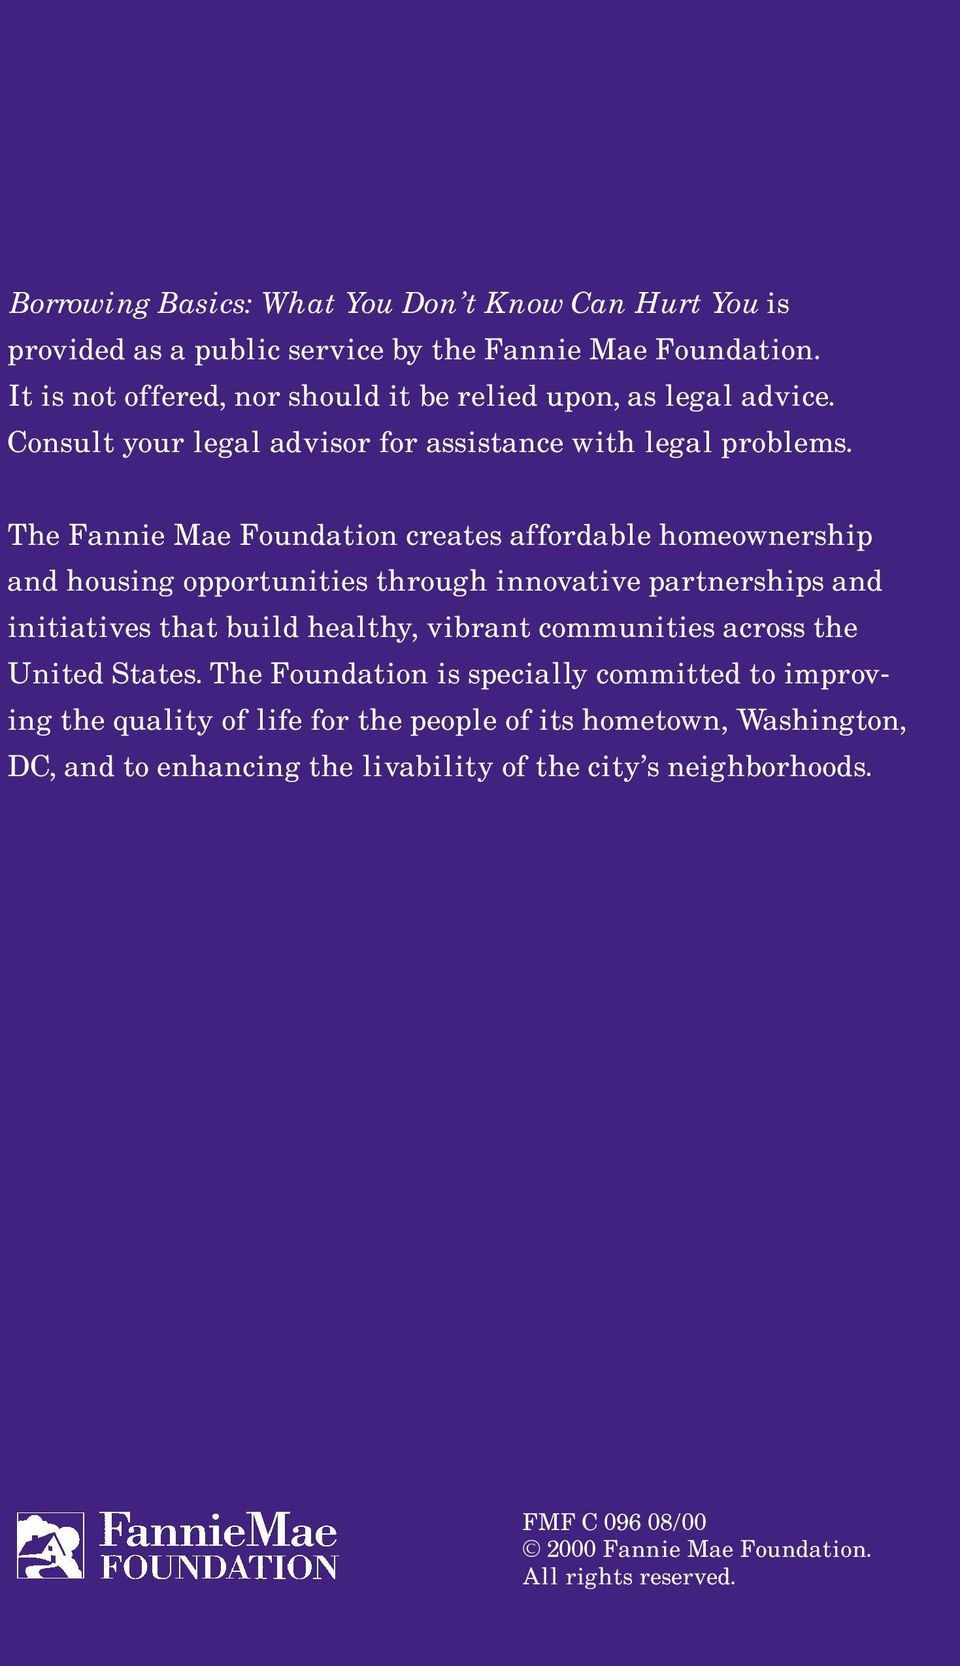 The Fannie Mae Foundation creates affordable homeownership and housing opportunities through innovative partnerships and initiatives that build healthy, vibrant